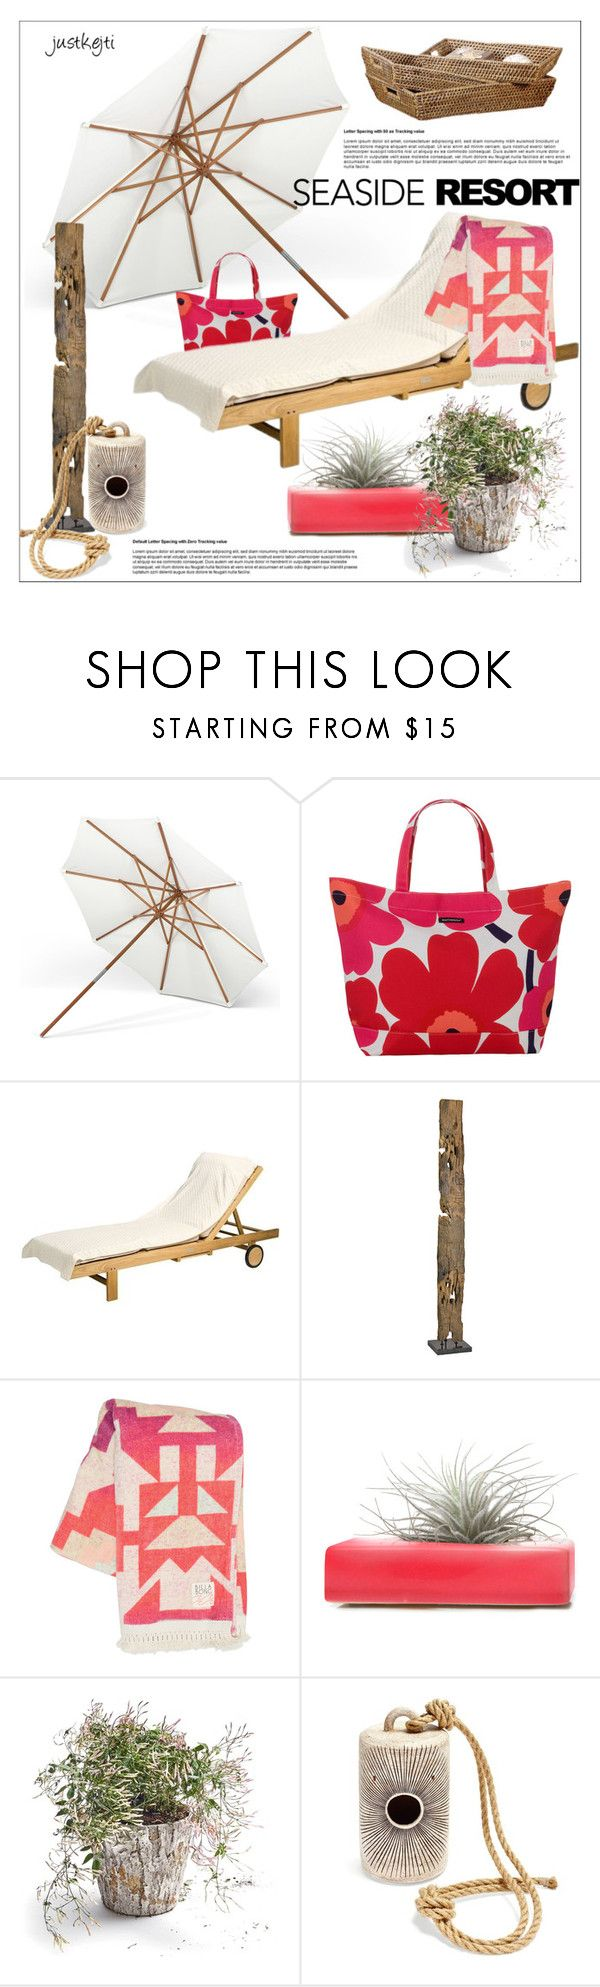 """Seaside Resort"" by justkejti ❤ liked on Polyvore featuring interior, interiors, interior design, home, home decor, interior decorating, Skagerak, Marimekko, Dot & Bo and Billabong"